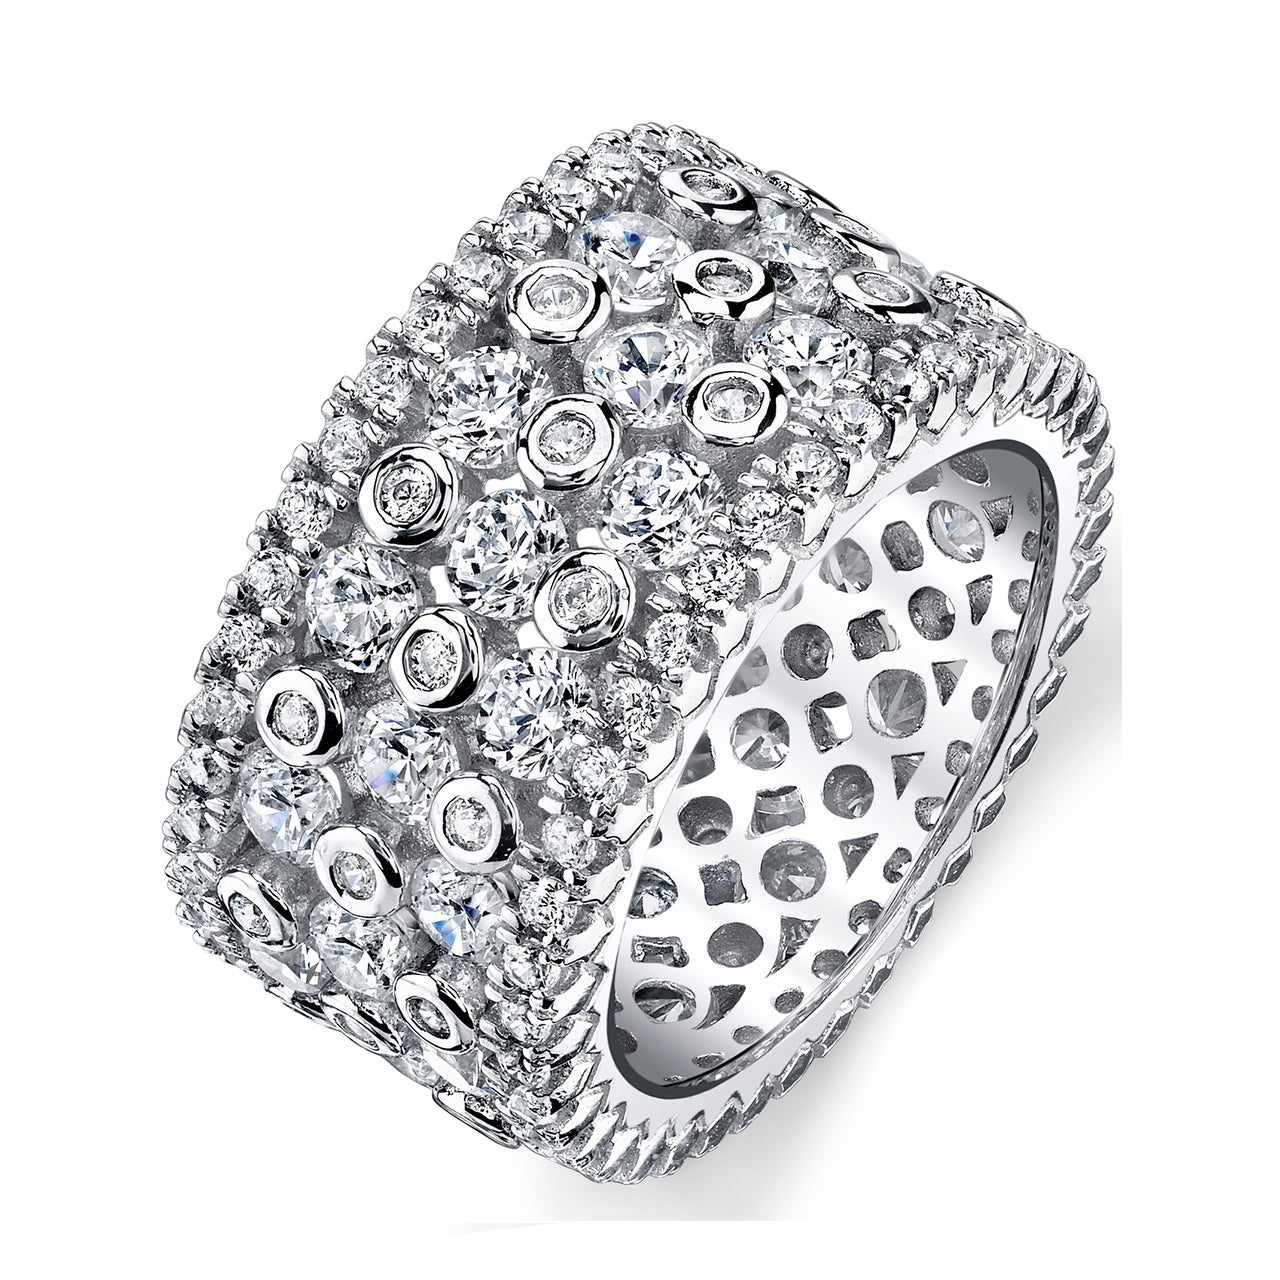 Oliveti Women s Wide Sterling Silver Ring Fashion Band with Round Cubic  Zirconia 11mm a65624076